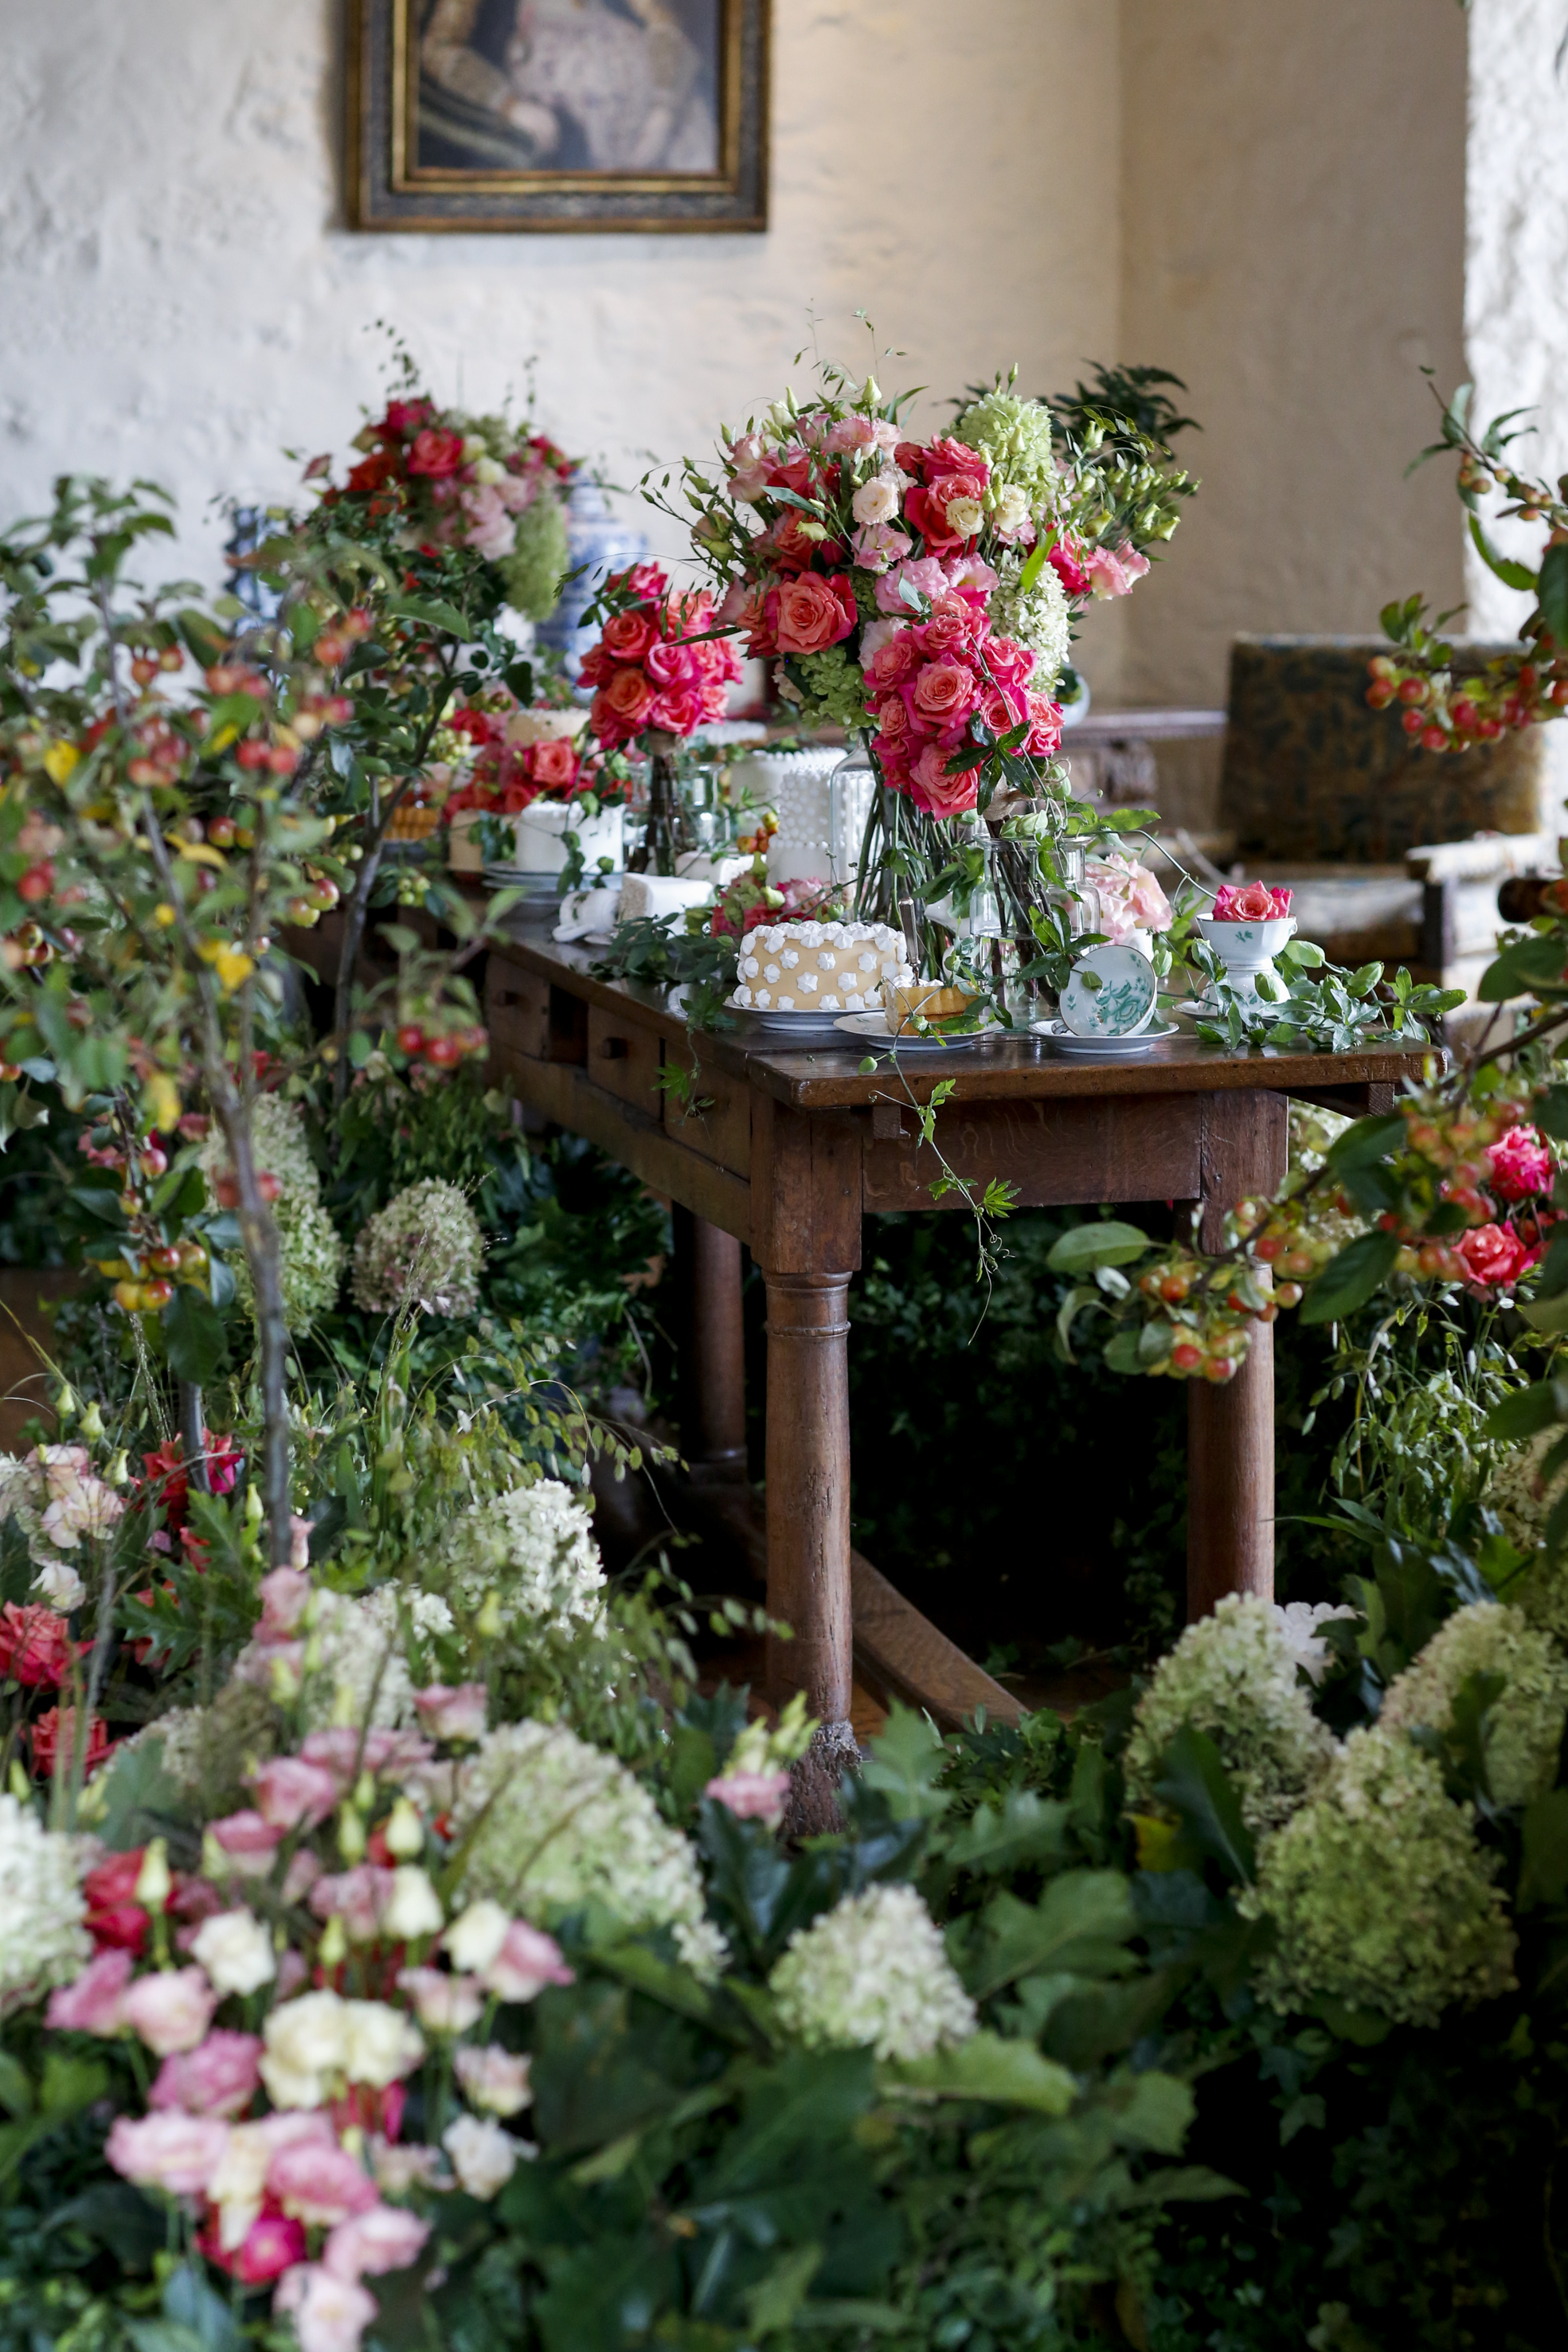 Leeds Castle Festival of Flowers. Picture by: www.matthewwalkerphotography.com